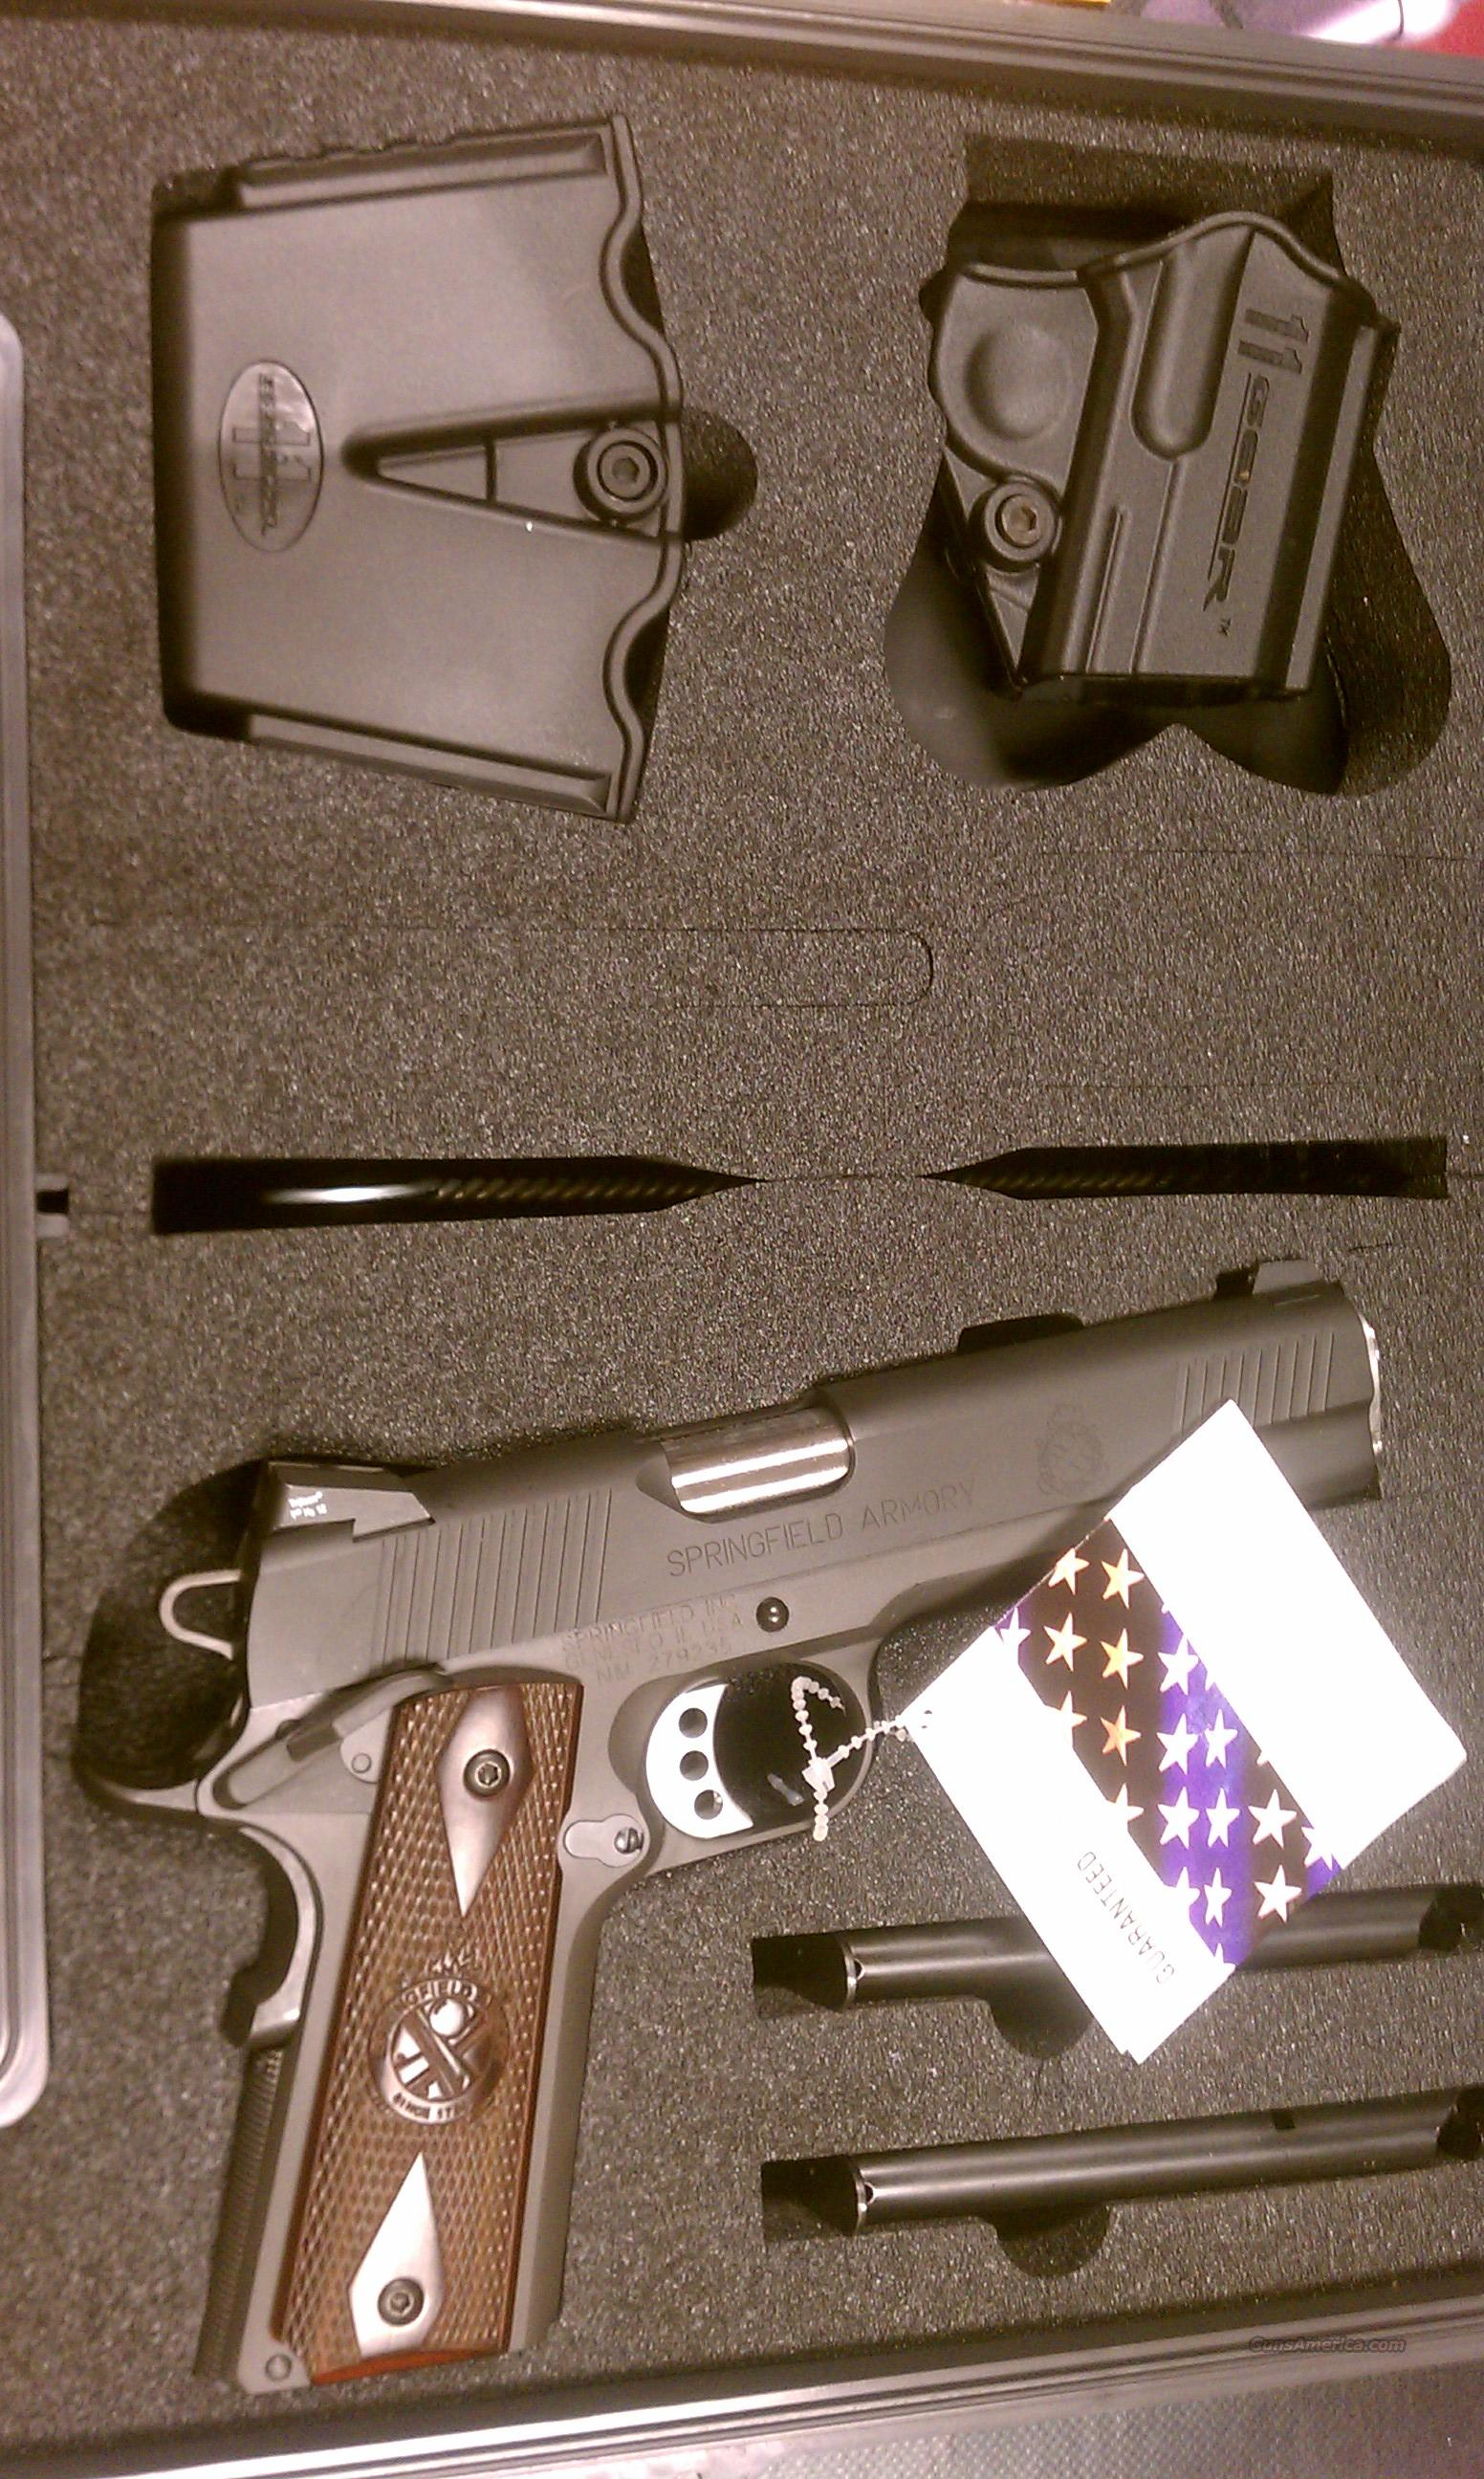 Springfield 1911A1 Loaded Night Sights PX9109LP  Guns > Pistols > Springfield Armory Pistols > 1911 Type